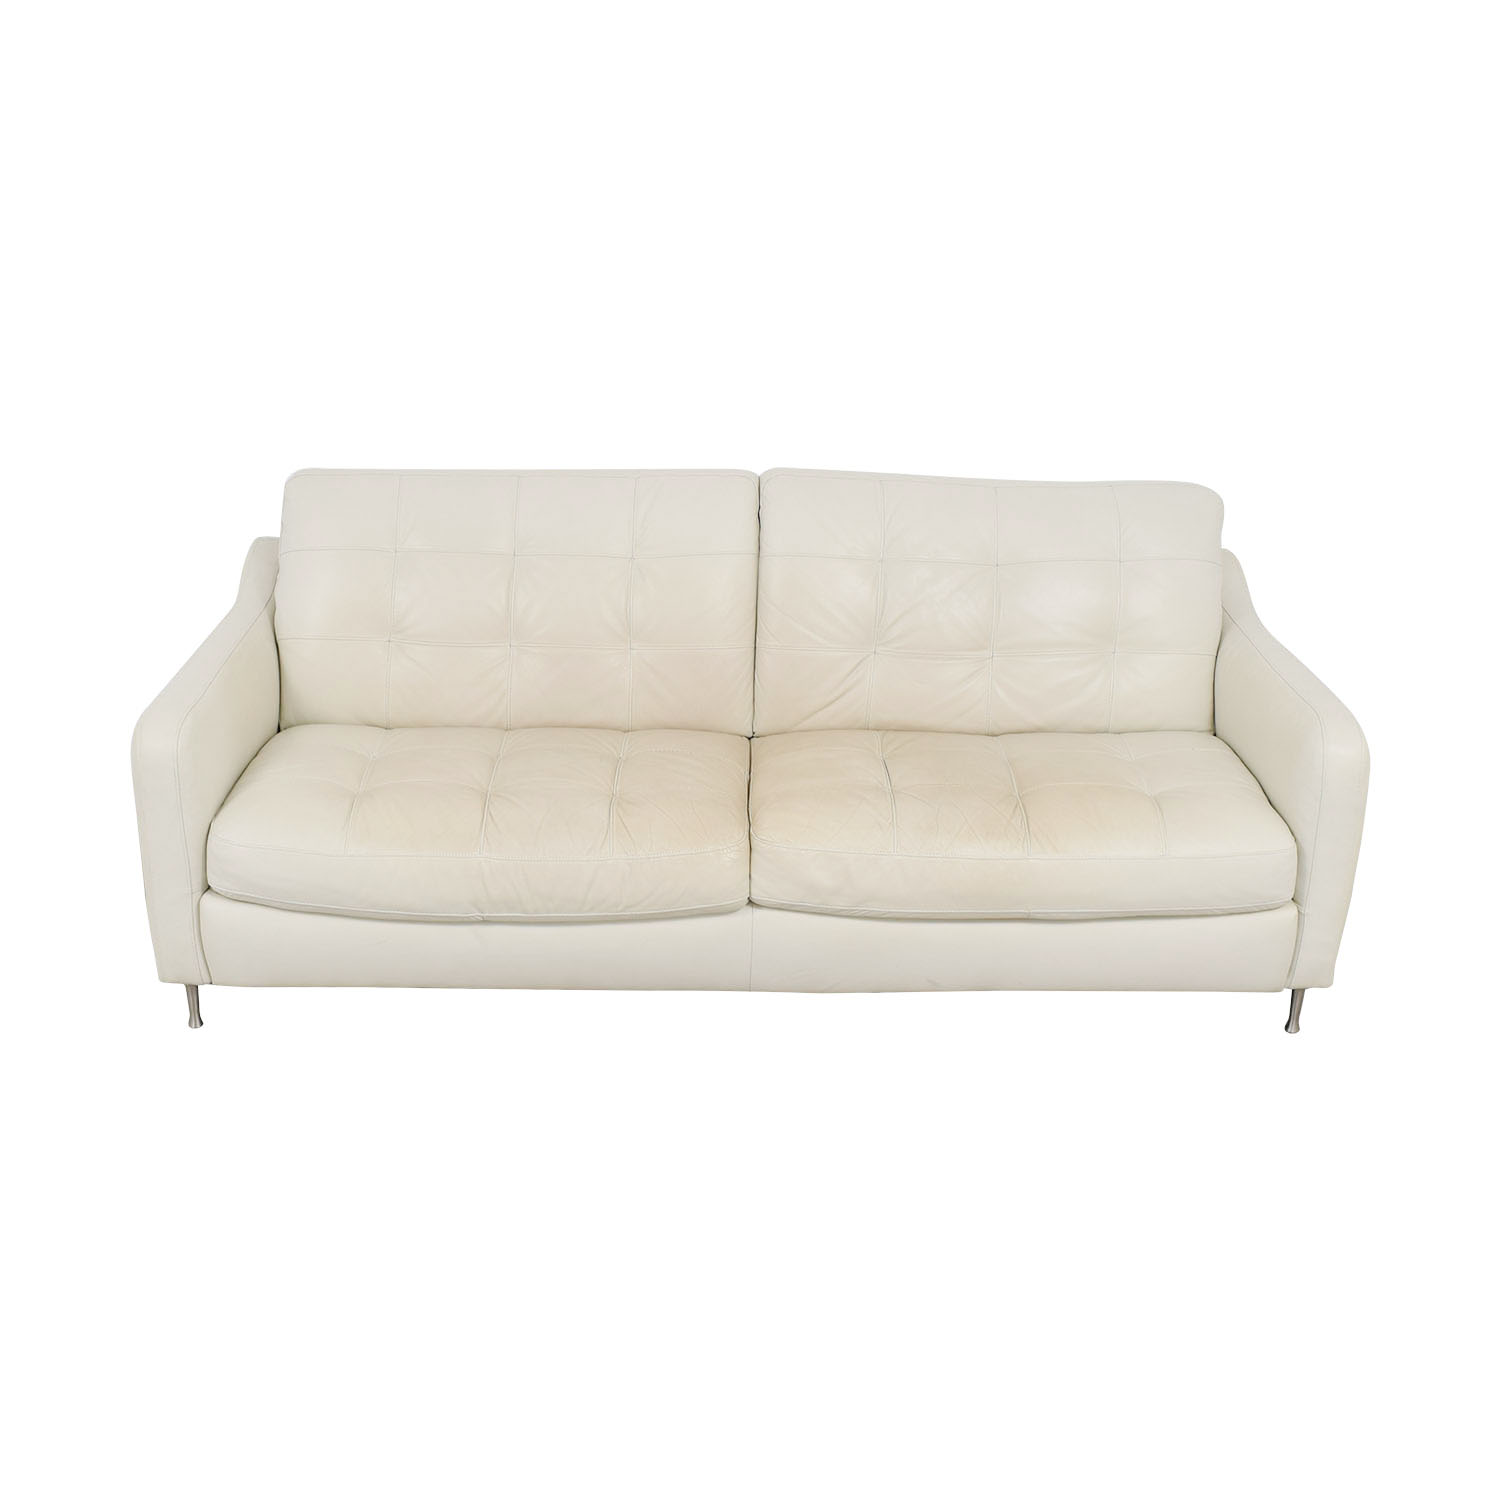 Natuzzi Natuzzi White Tufted Leather Sofa discount